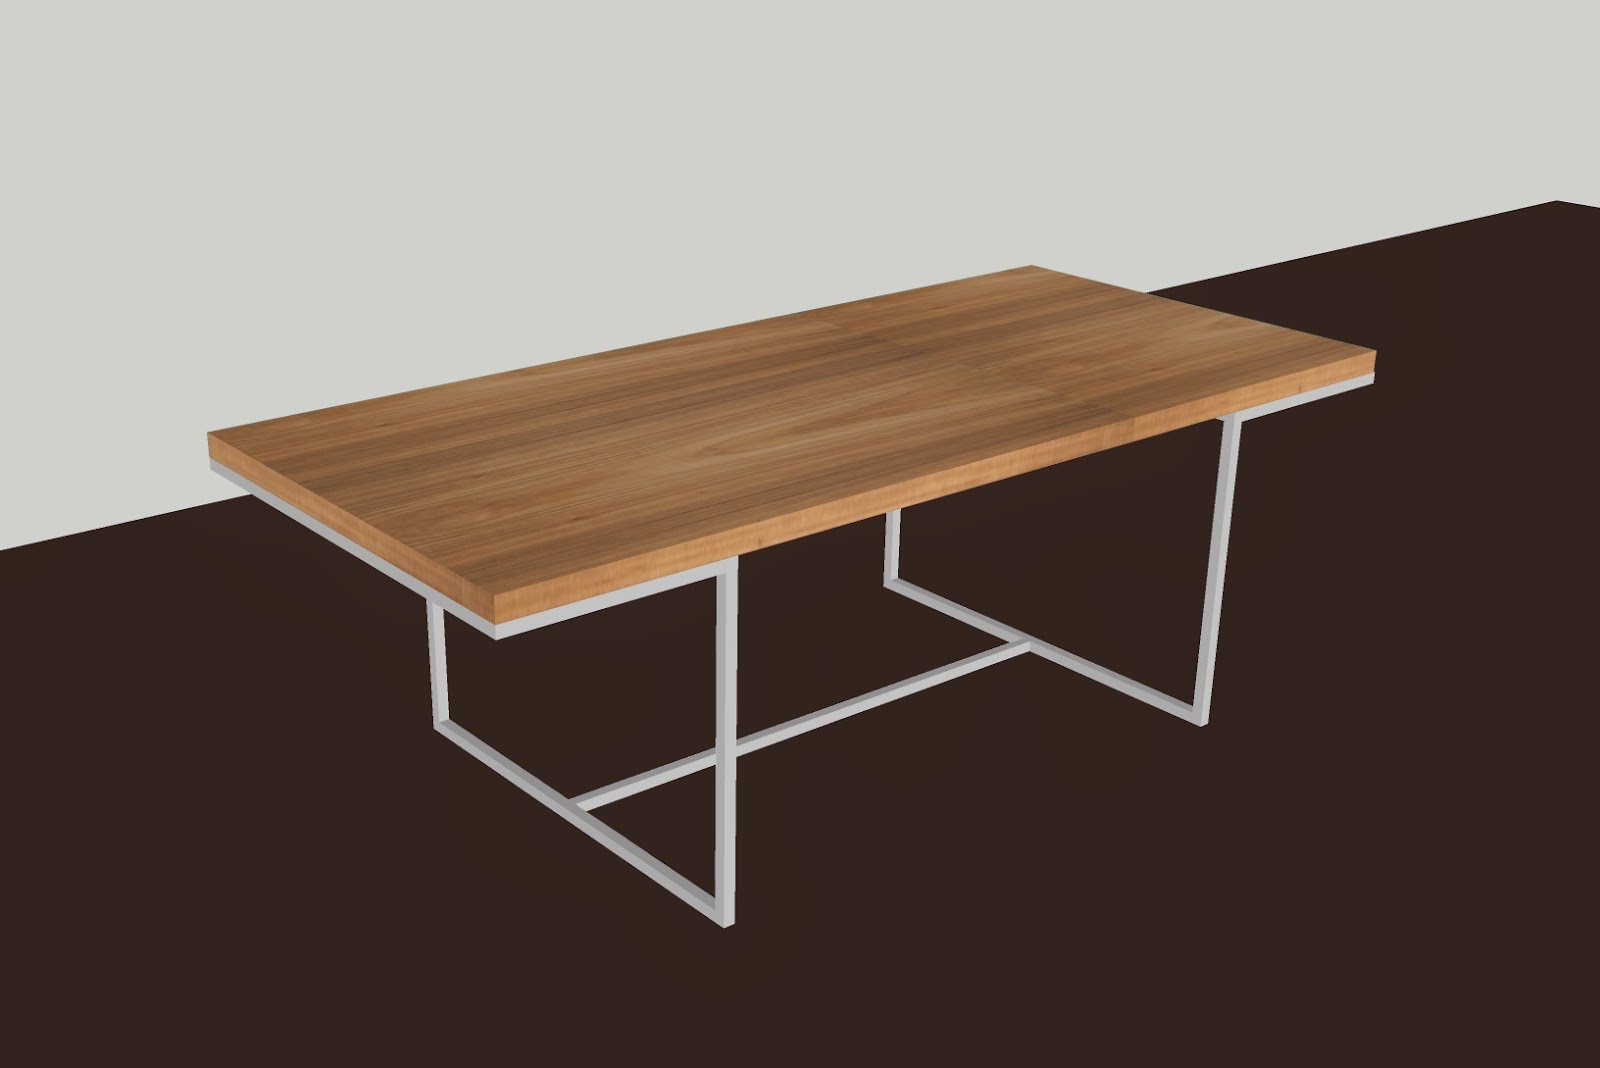 Fukusu Walnut Veneer Dining Table With Shiny Stainless Steel Leg